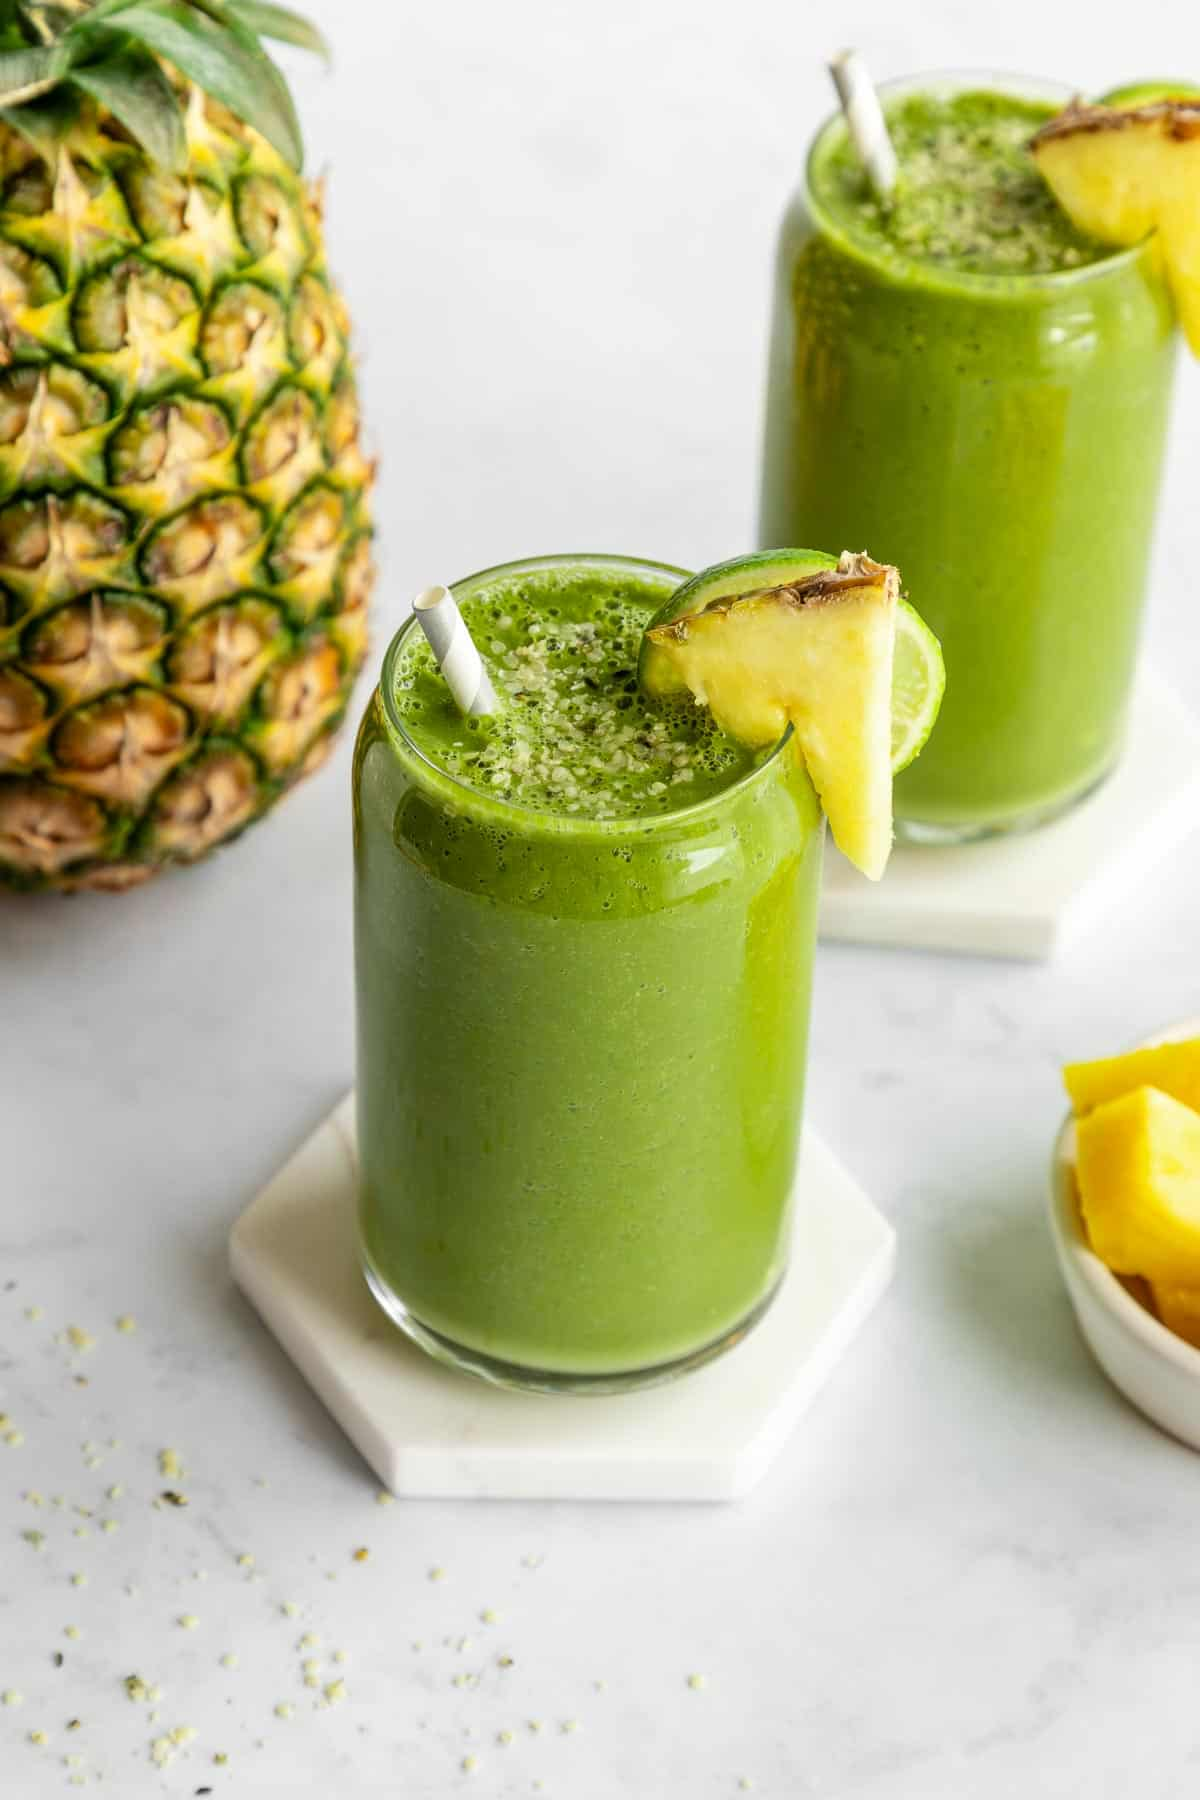 pineapple green smoothie inside a glass